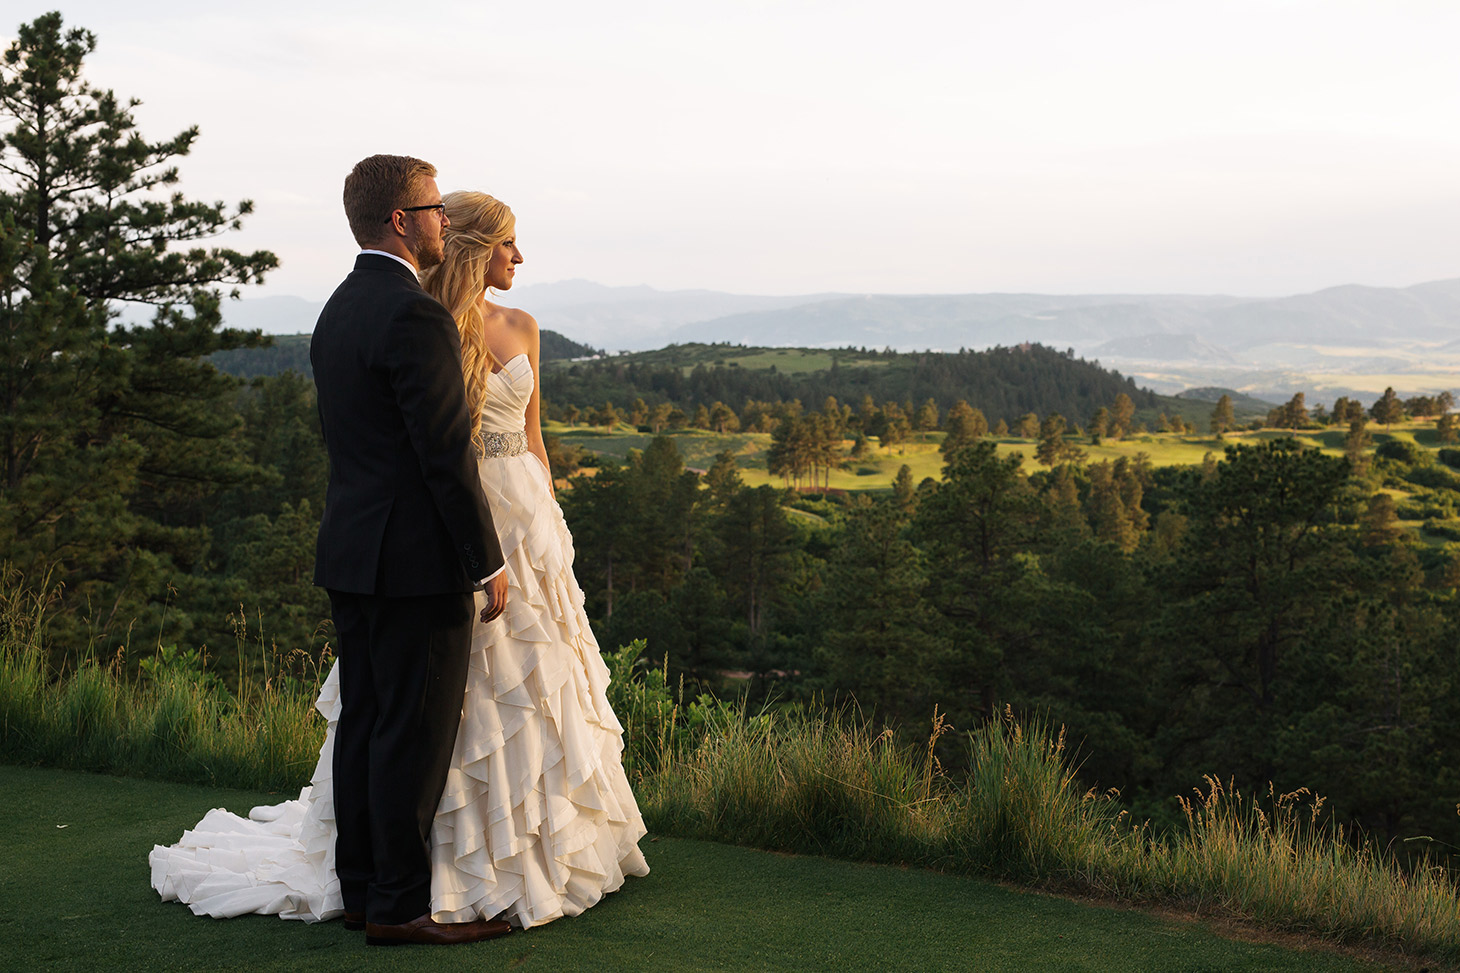 Megan-Newton-Photography-Best-Wedding-Photos-2015-174